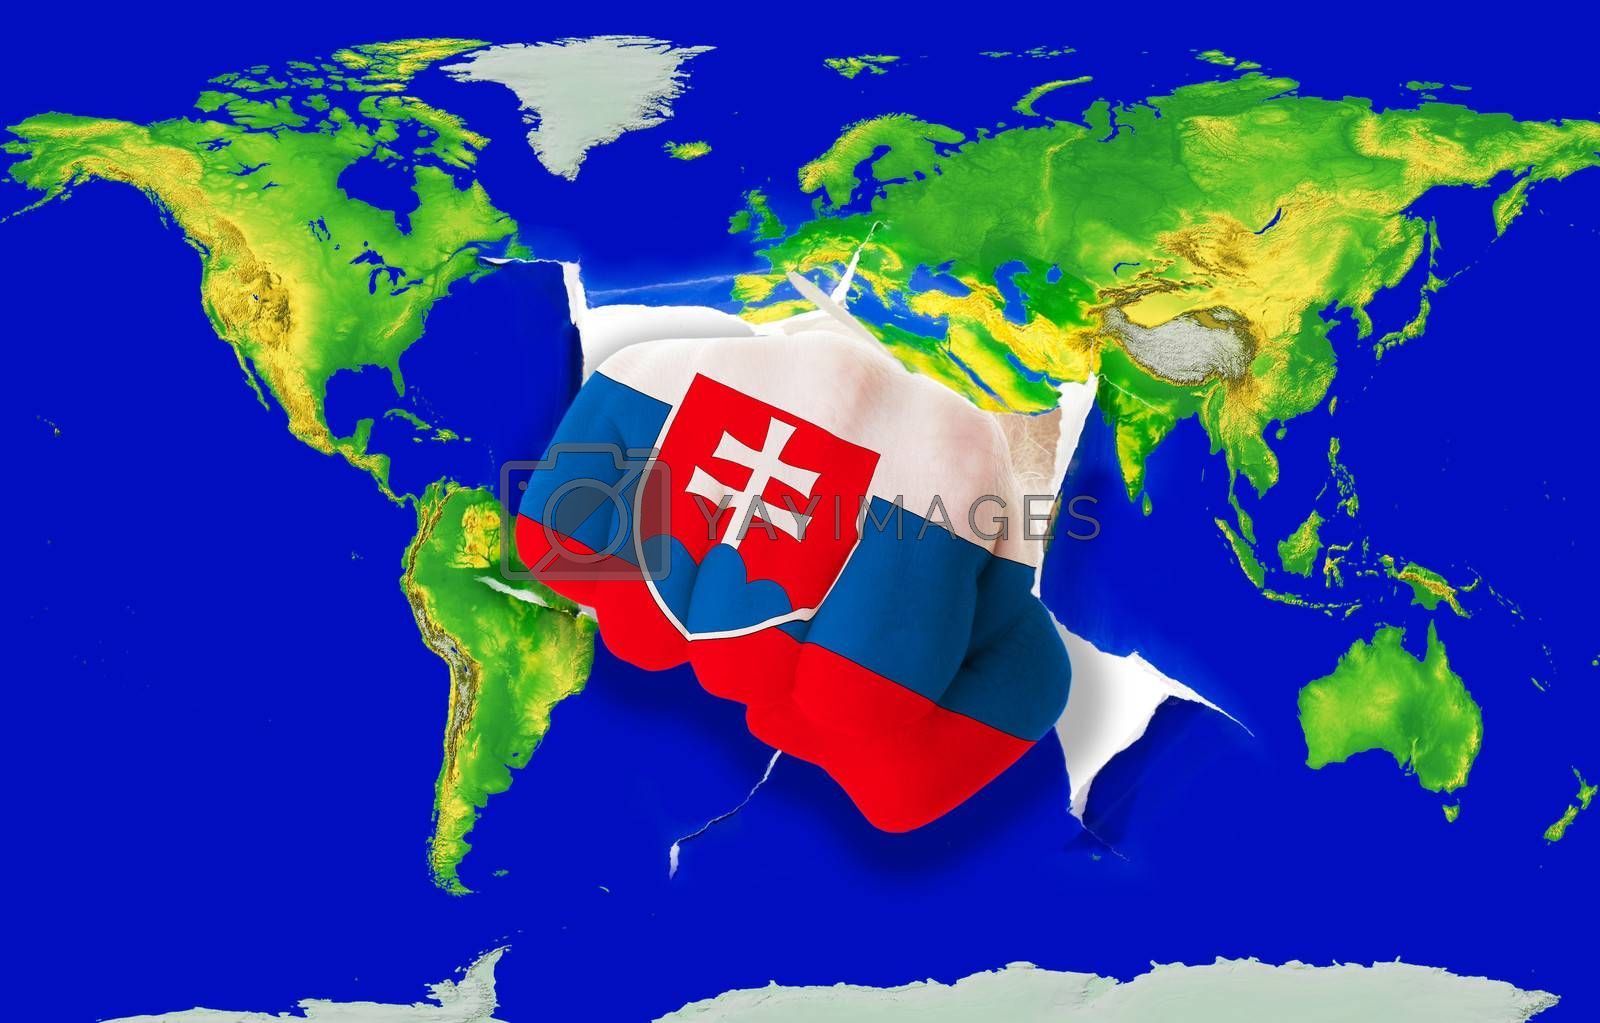 Fist in color national flag of slovakia punching world map as symbol of export, economic growth, power and success